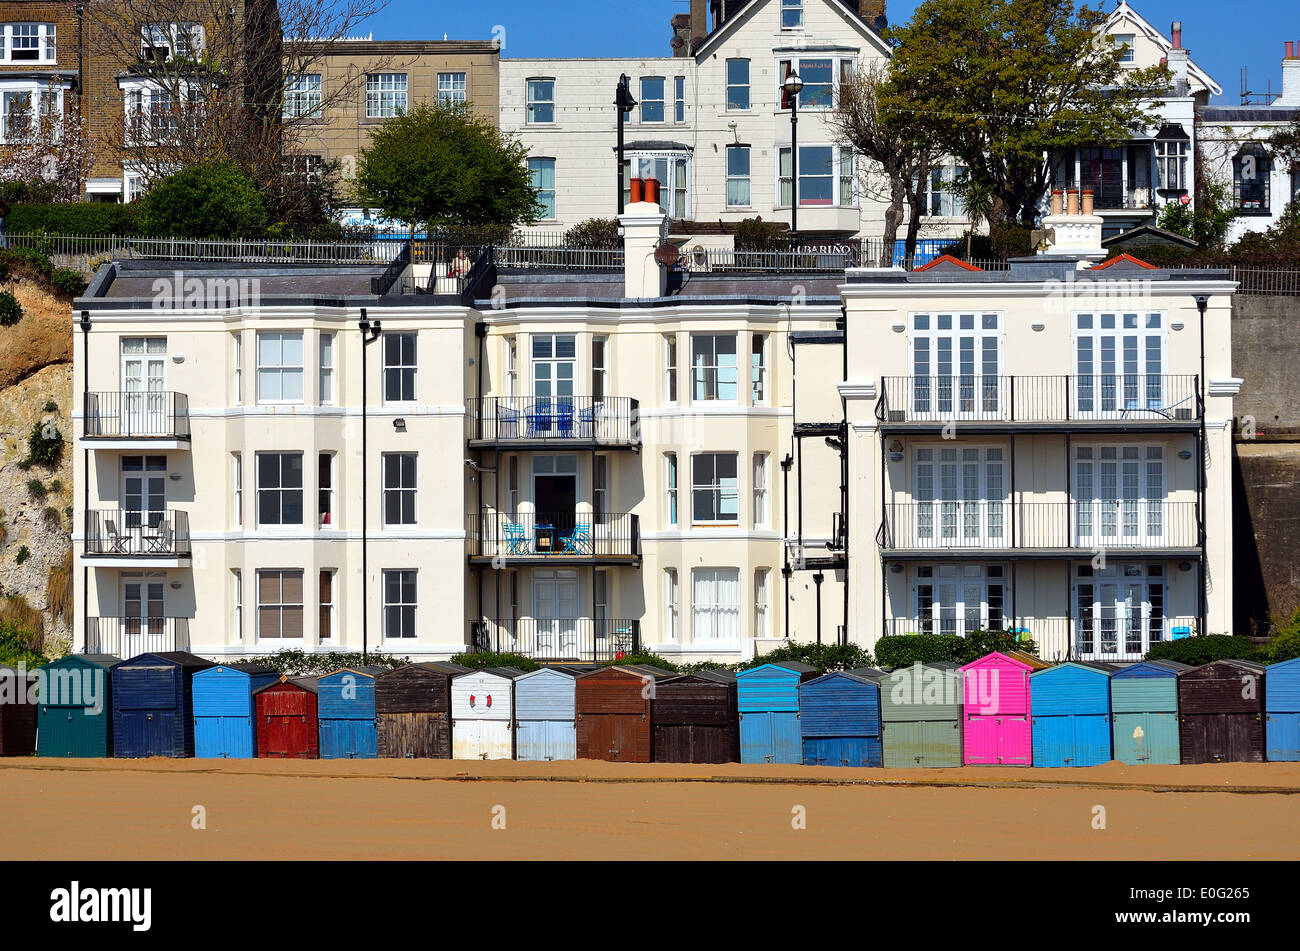 Beach huts and homes on Broadstairs seafront - Stock Image